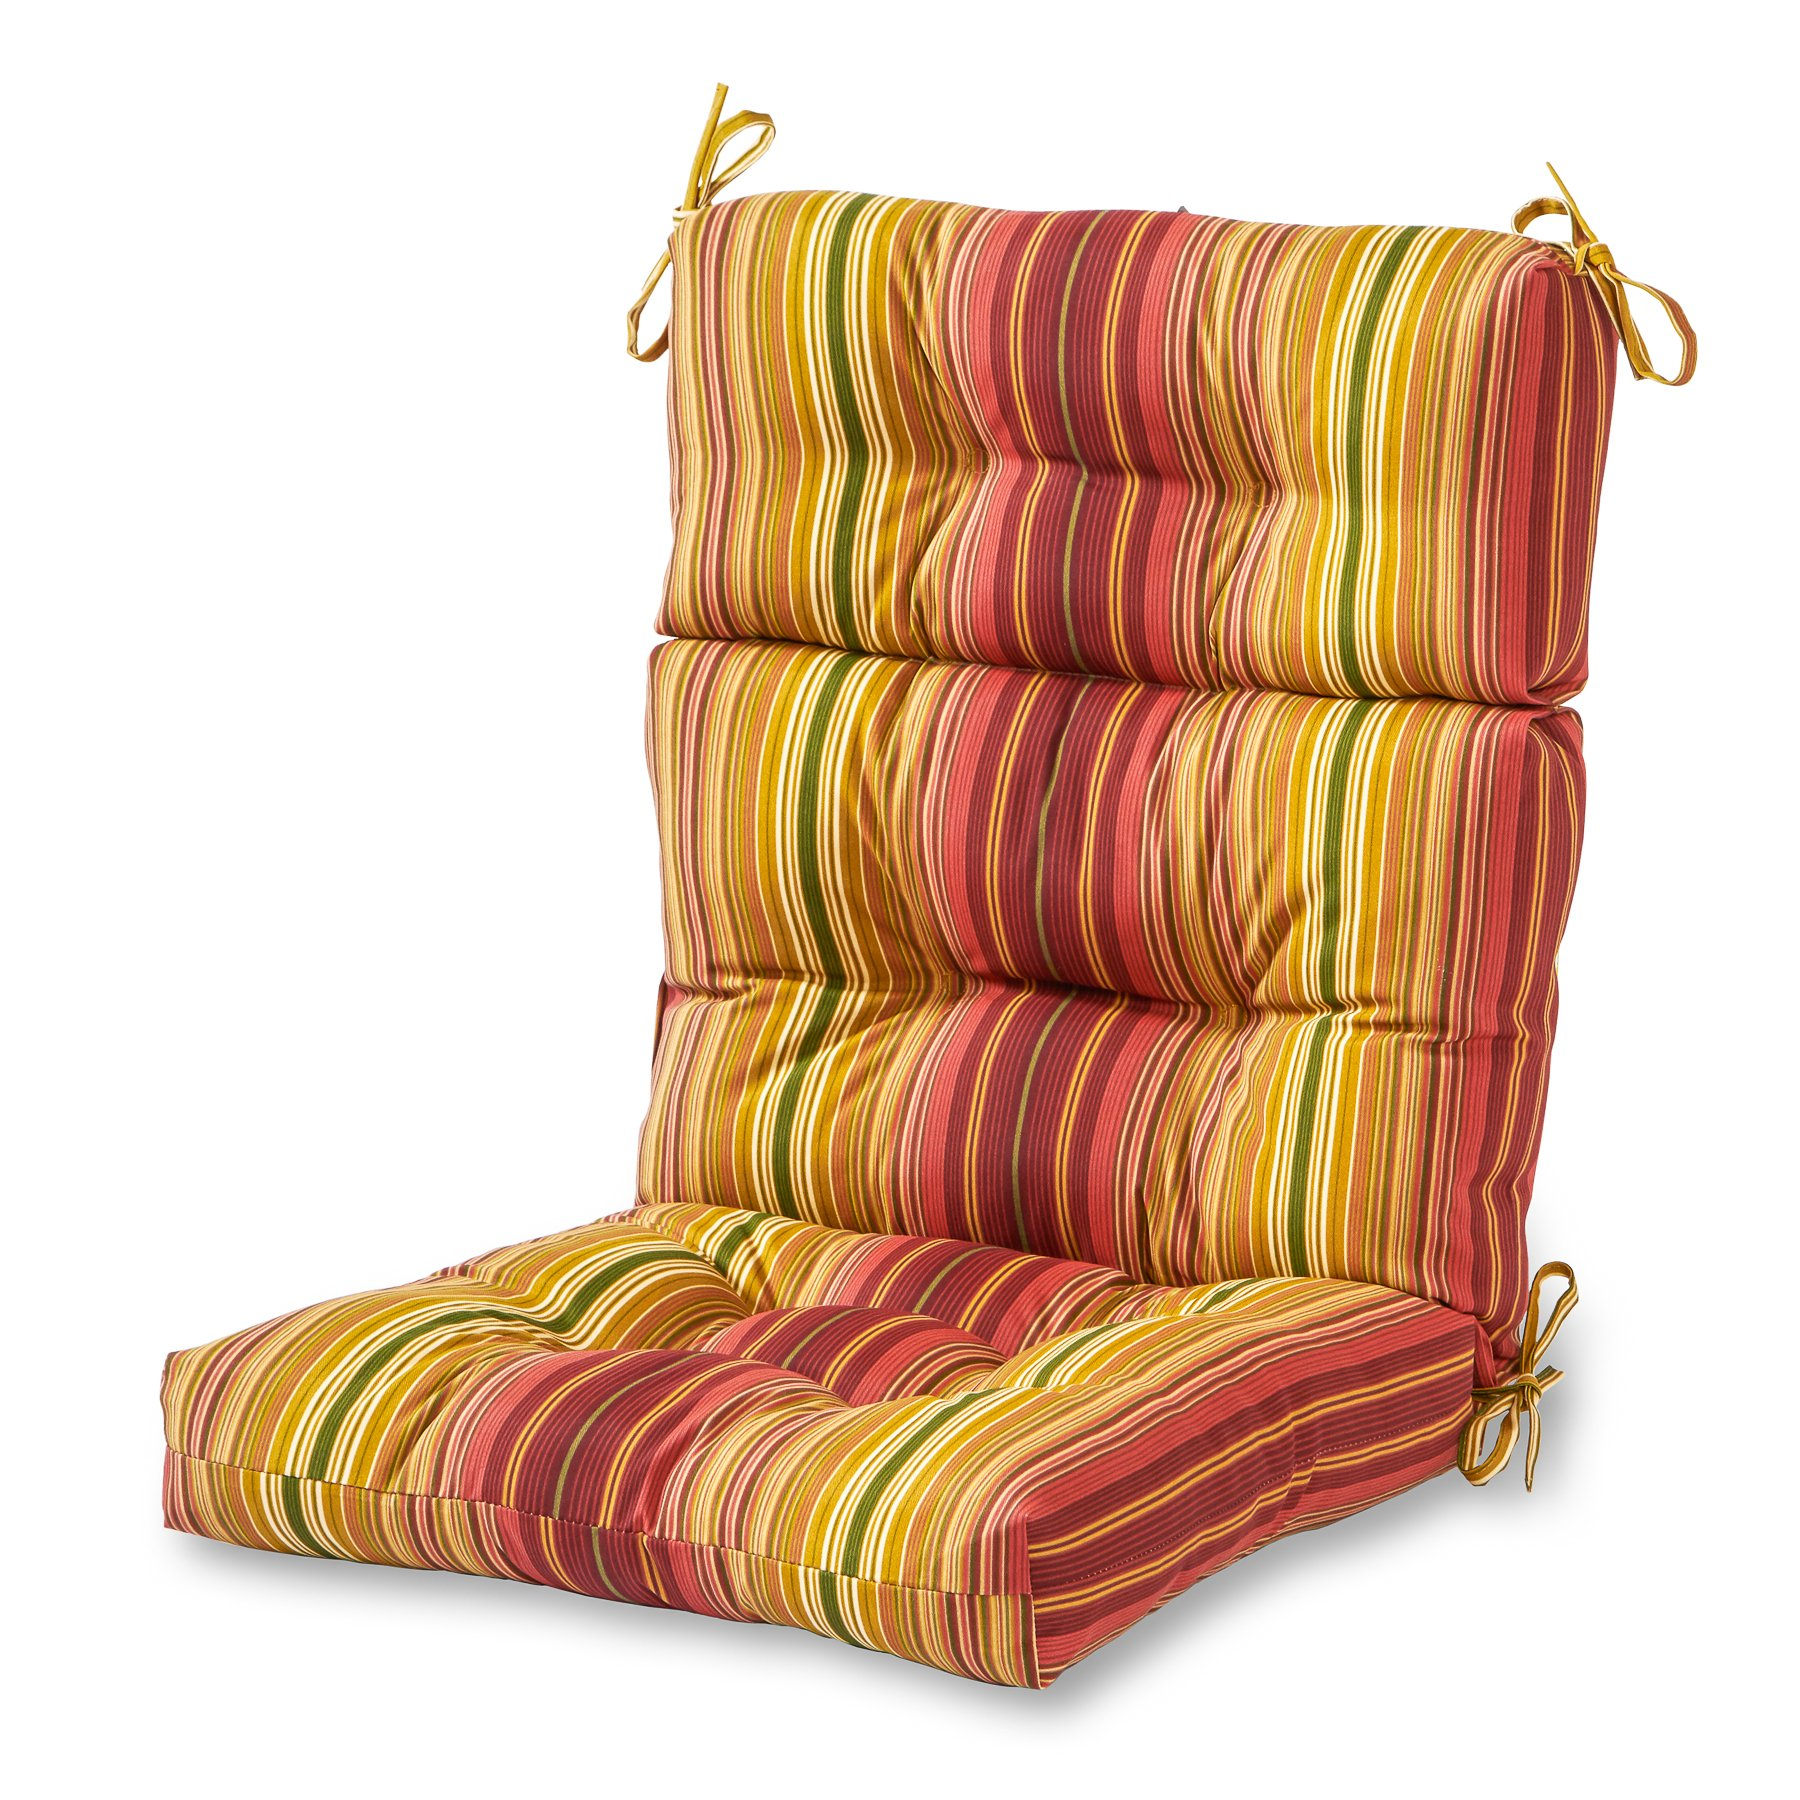 High Design Furniture: Greendale Home Fashions Indoor/Outdoor High Back Chair